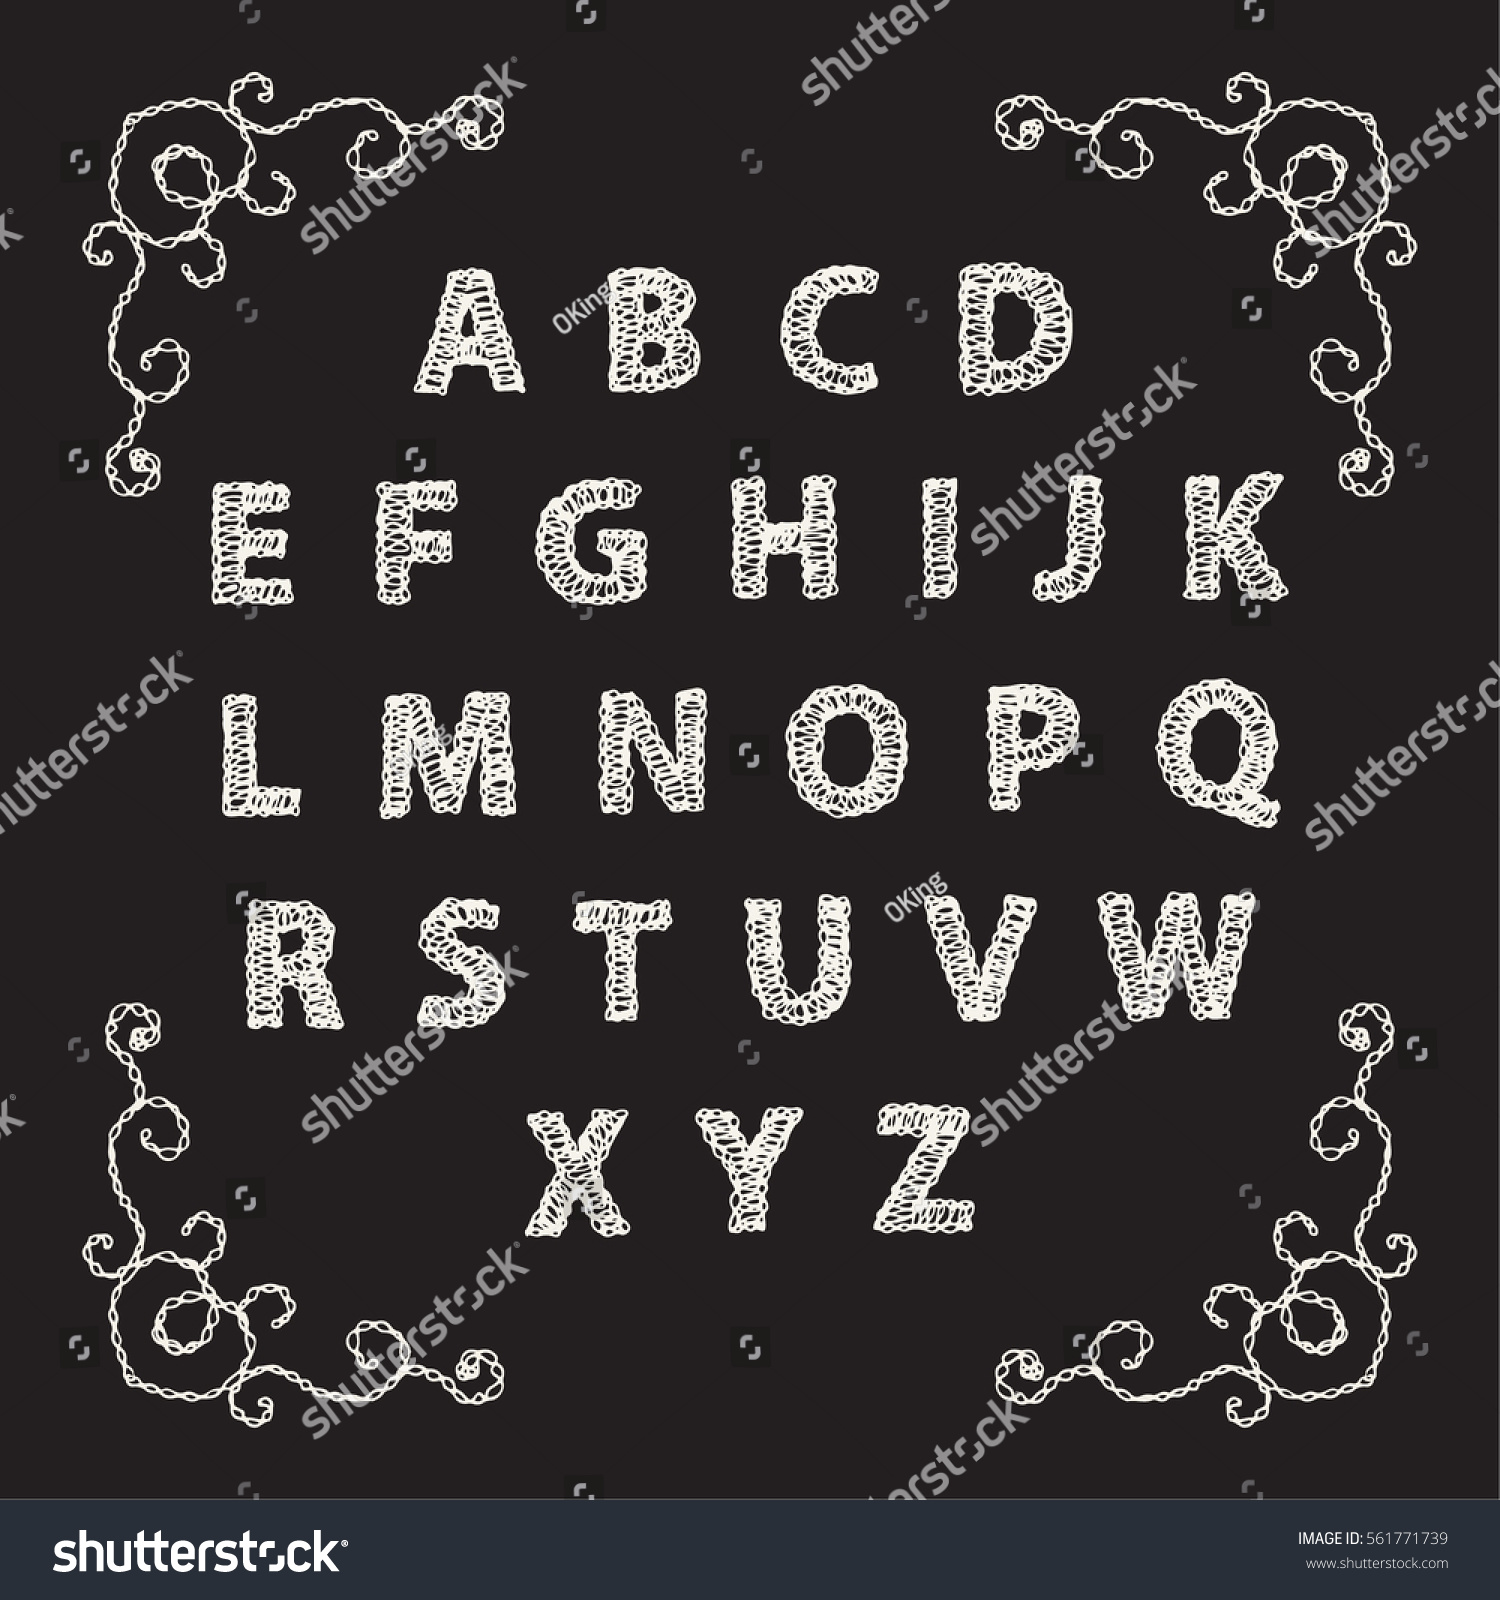 Embroidered Font Alphabet Letters Colorful Crocheted Stock Vector HD ...